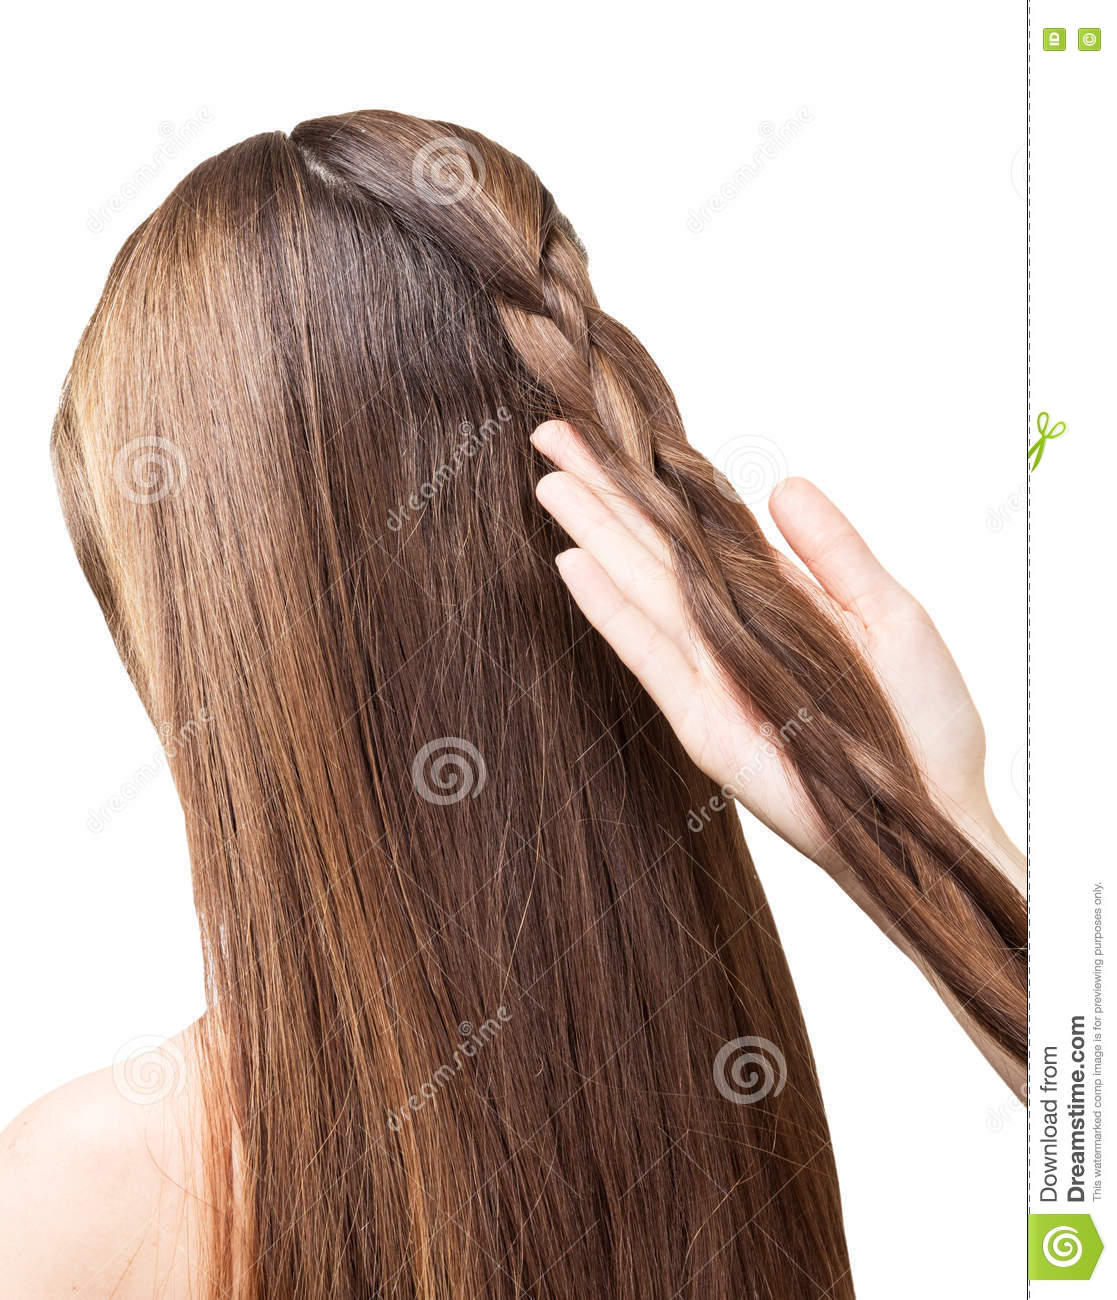 Barber girl braids the long hair in braid isolated.